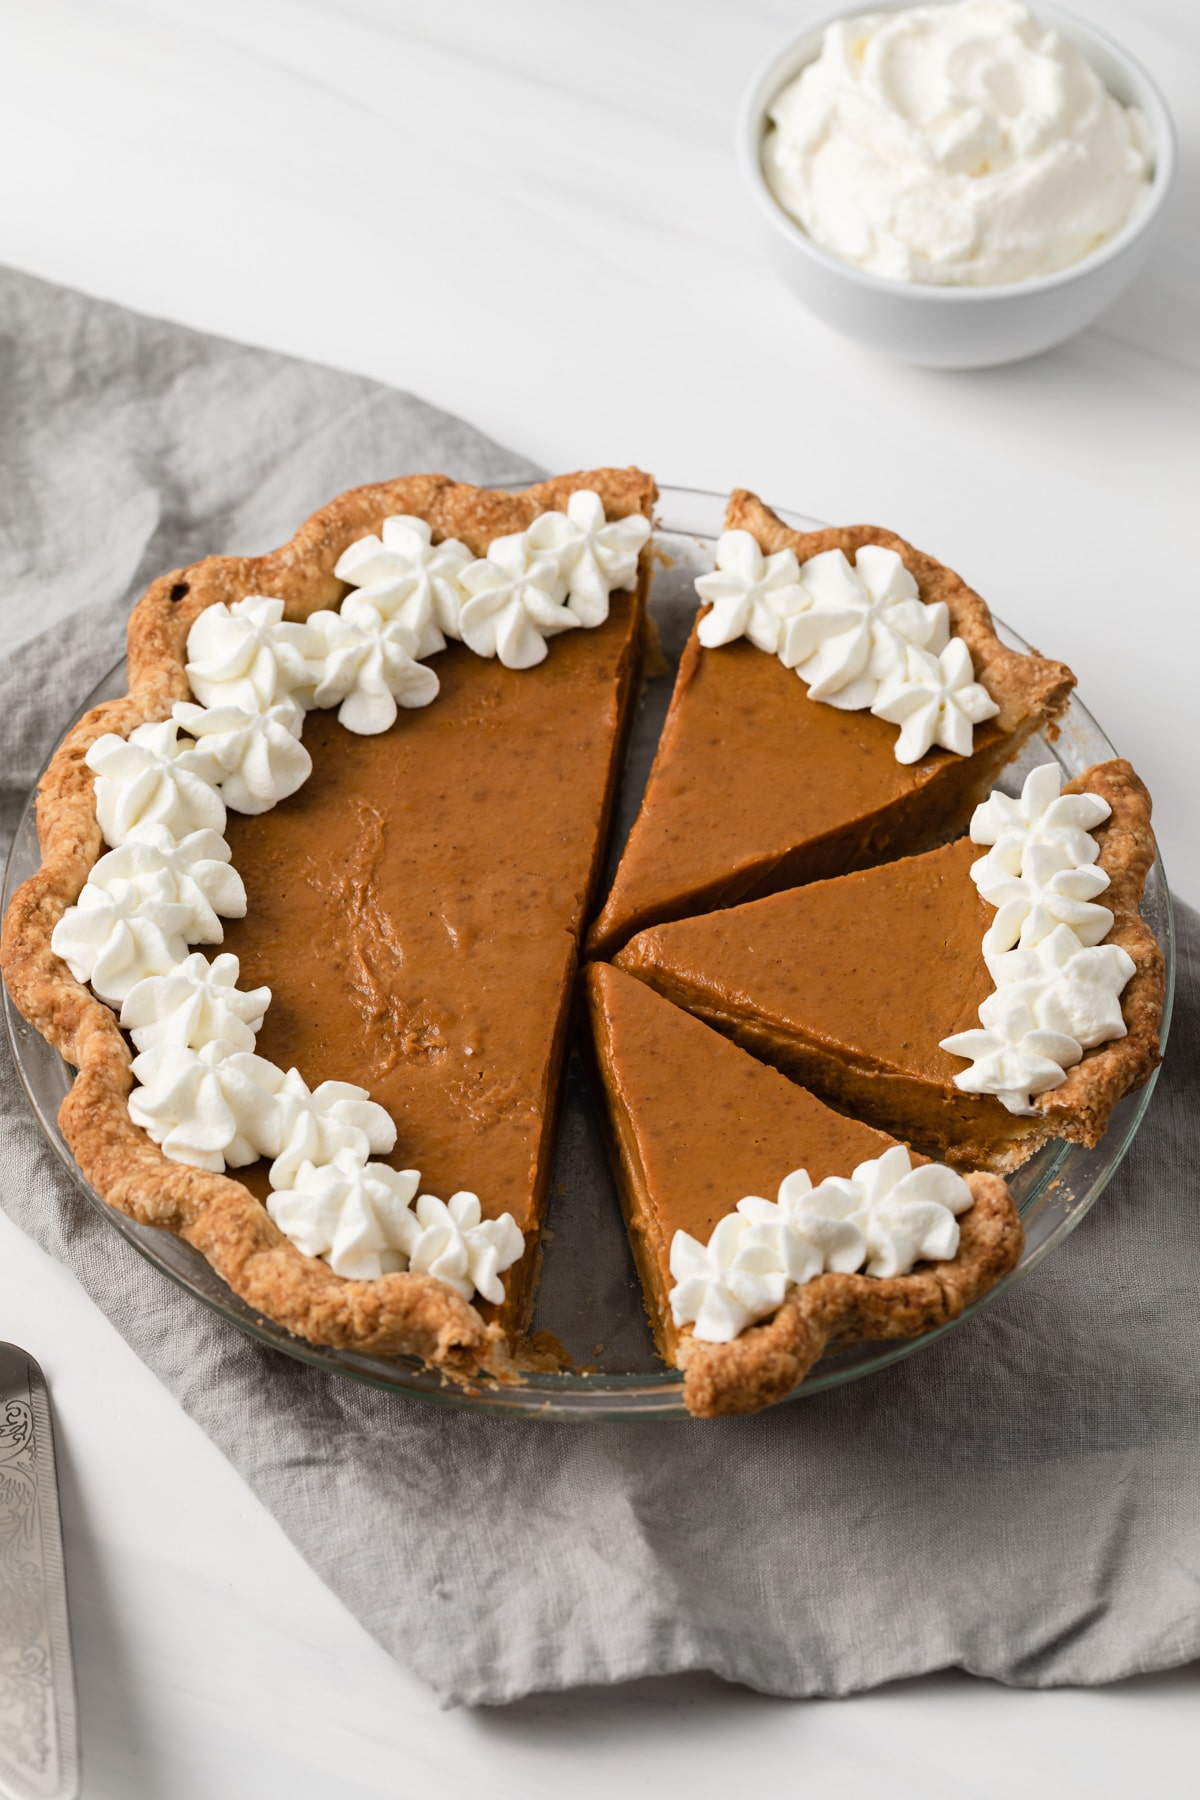 angled view of pumpkin pie with slices cut